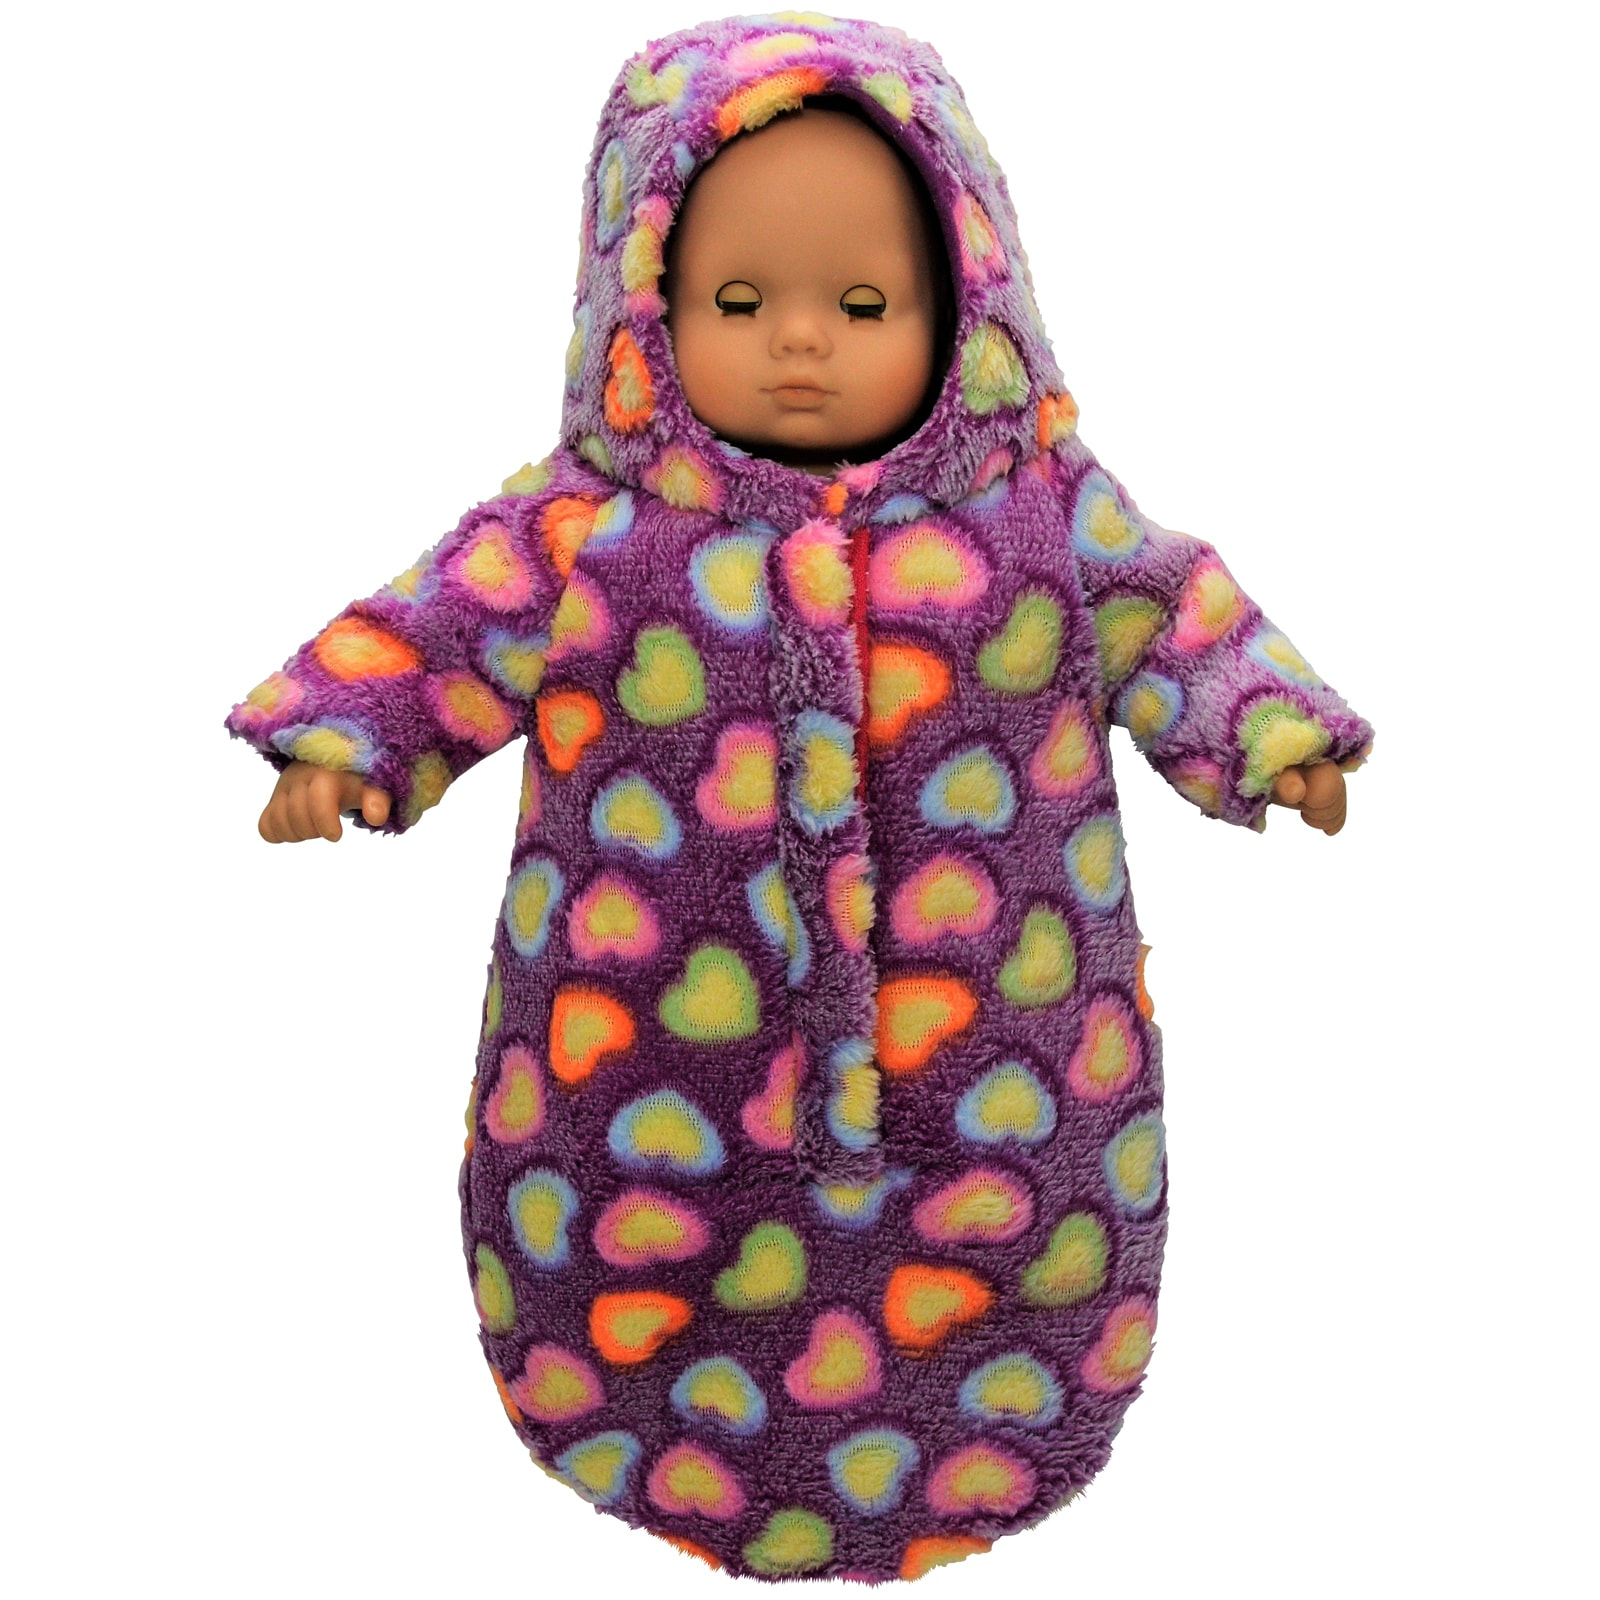 The Queen's Treasures 15 Inch Baby Doll Soft Plush Bitty ...